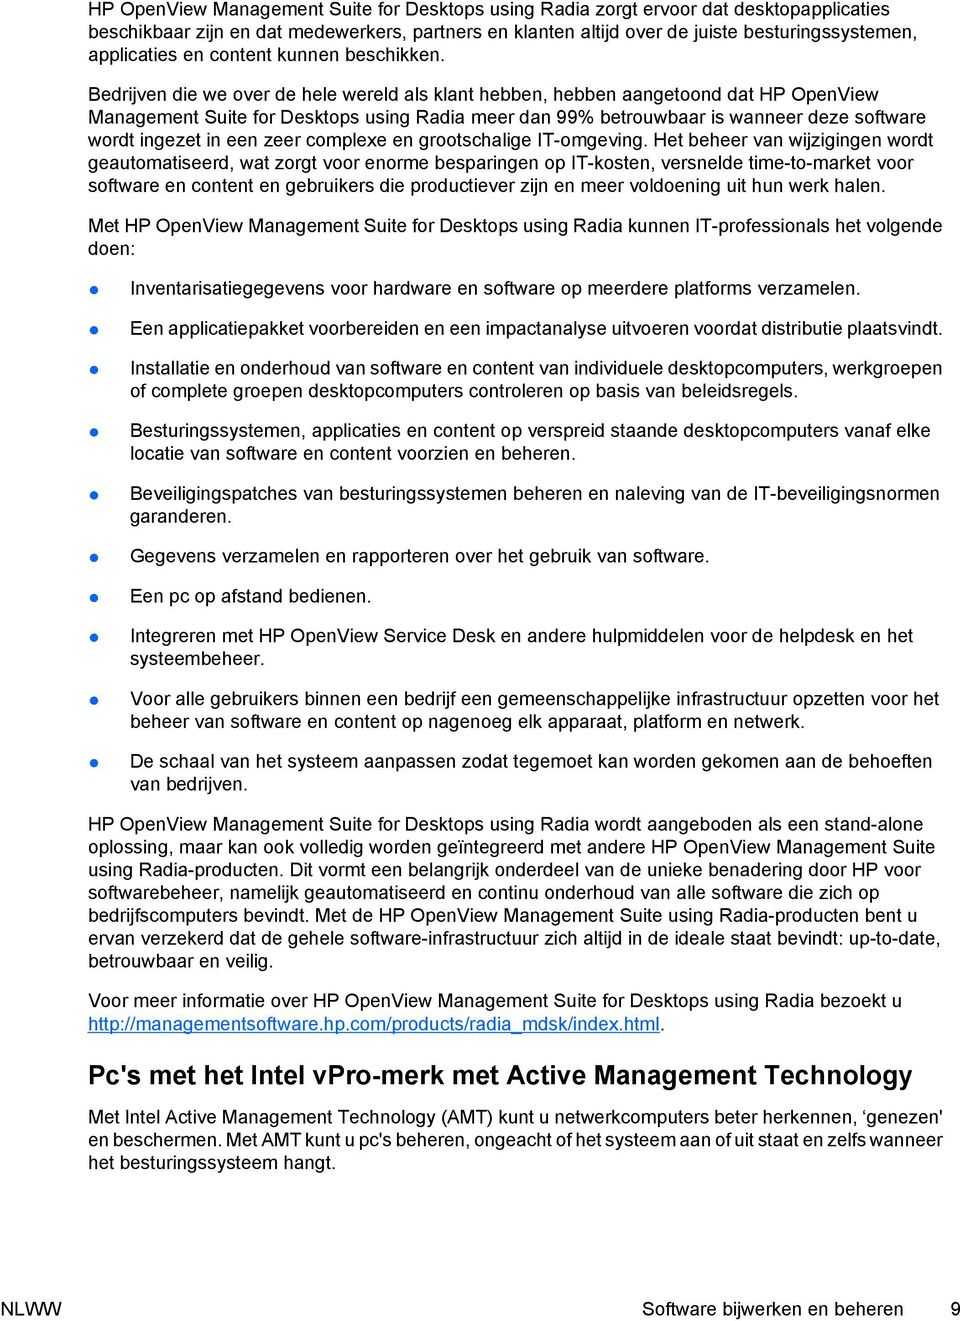 Bedrijven die we over de hele wereld als klant hebben, hebben aangetoond dat HP OpenView Management Suite for Desktops using Radia meer dan 99% betrouwbaar is wanneer deze software wordt ingezet in